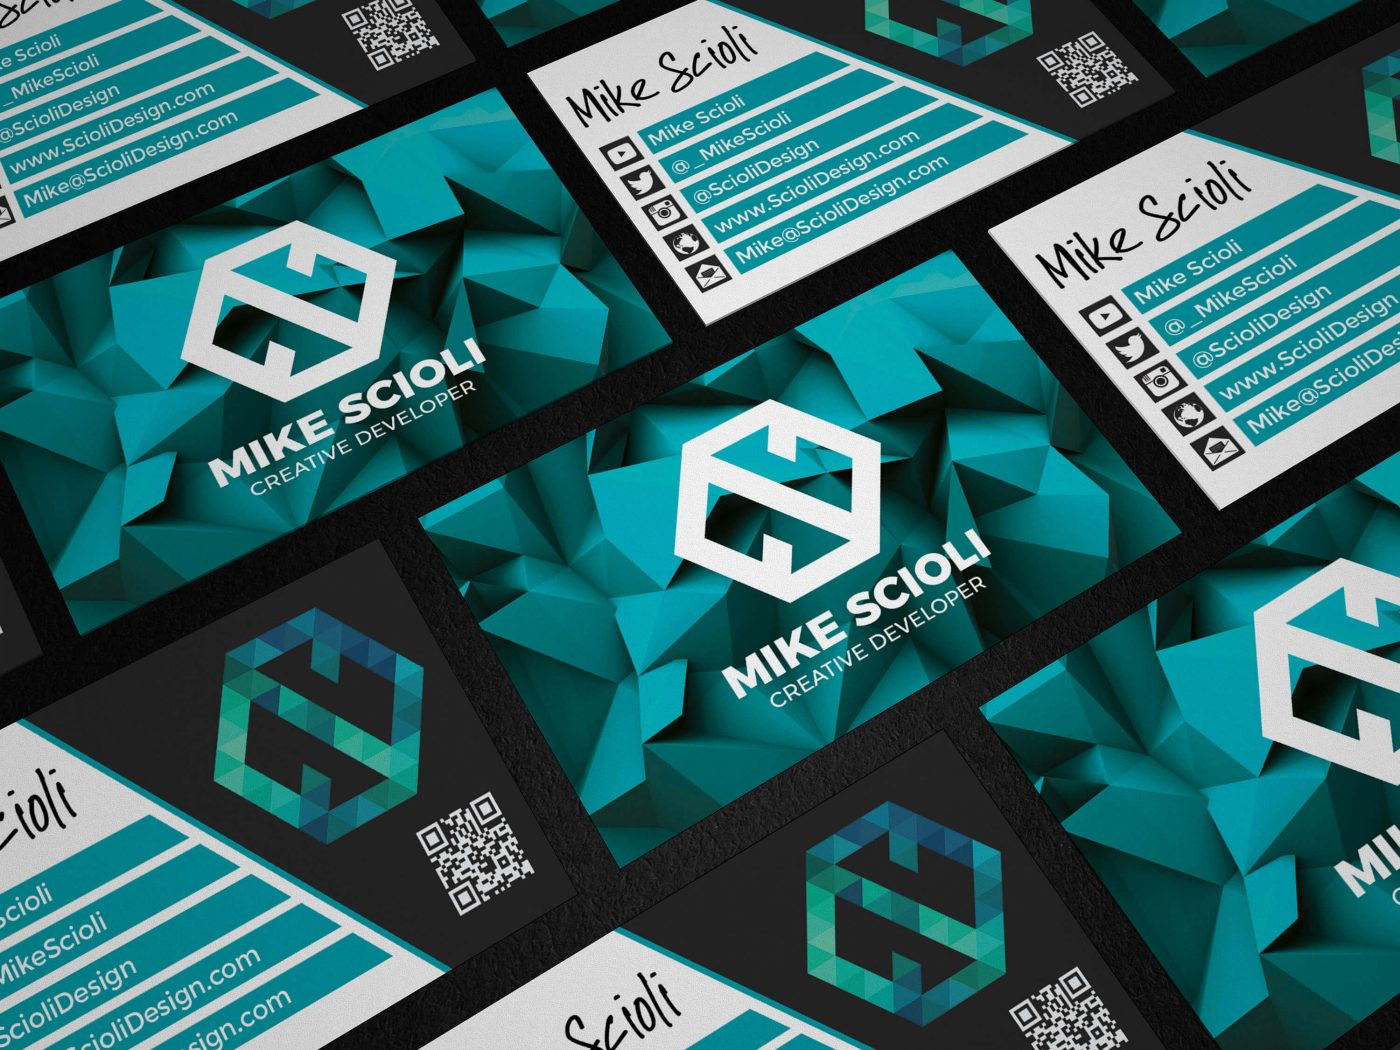 Mike Scioli Business Card Mockup